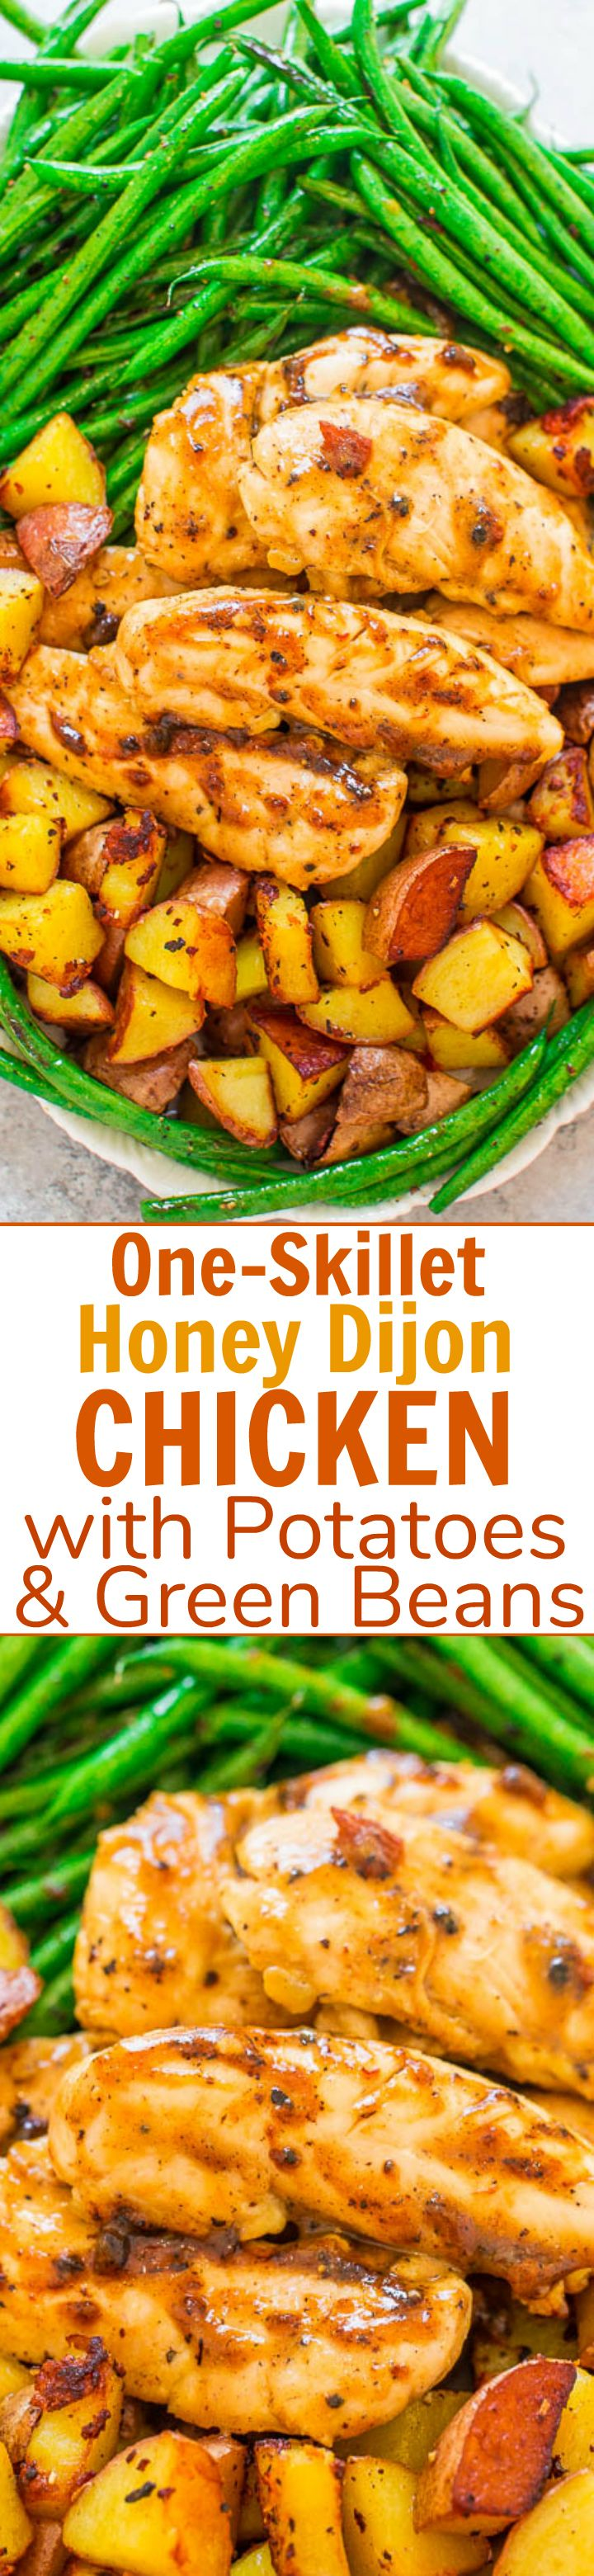 One-Skillet Honey Dijon Chicken with Potatoes and Green Beans - An EASY, one-skillet recipe that's ready in 20 minutes!! Juicy chicken, crispy potatoes, and crisp-tender green beans for the WIN! Great for busy weeknights or date-night-in!!